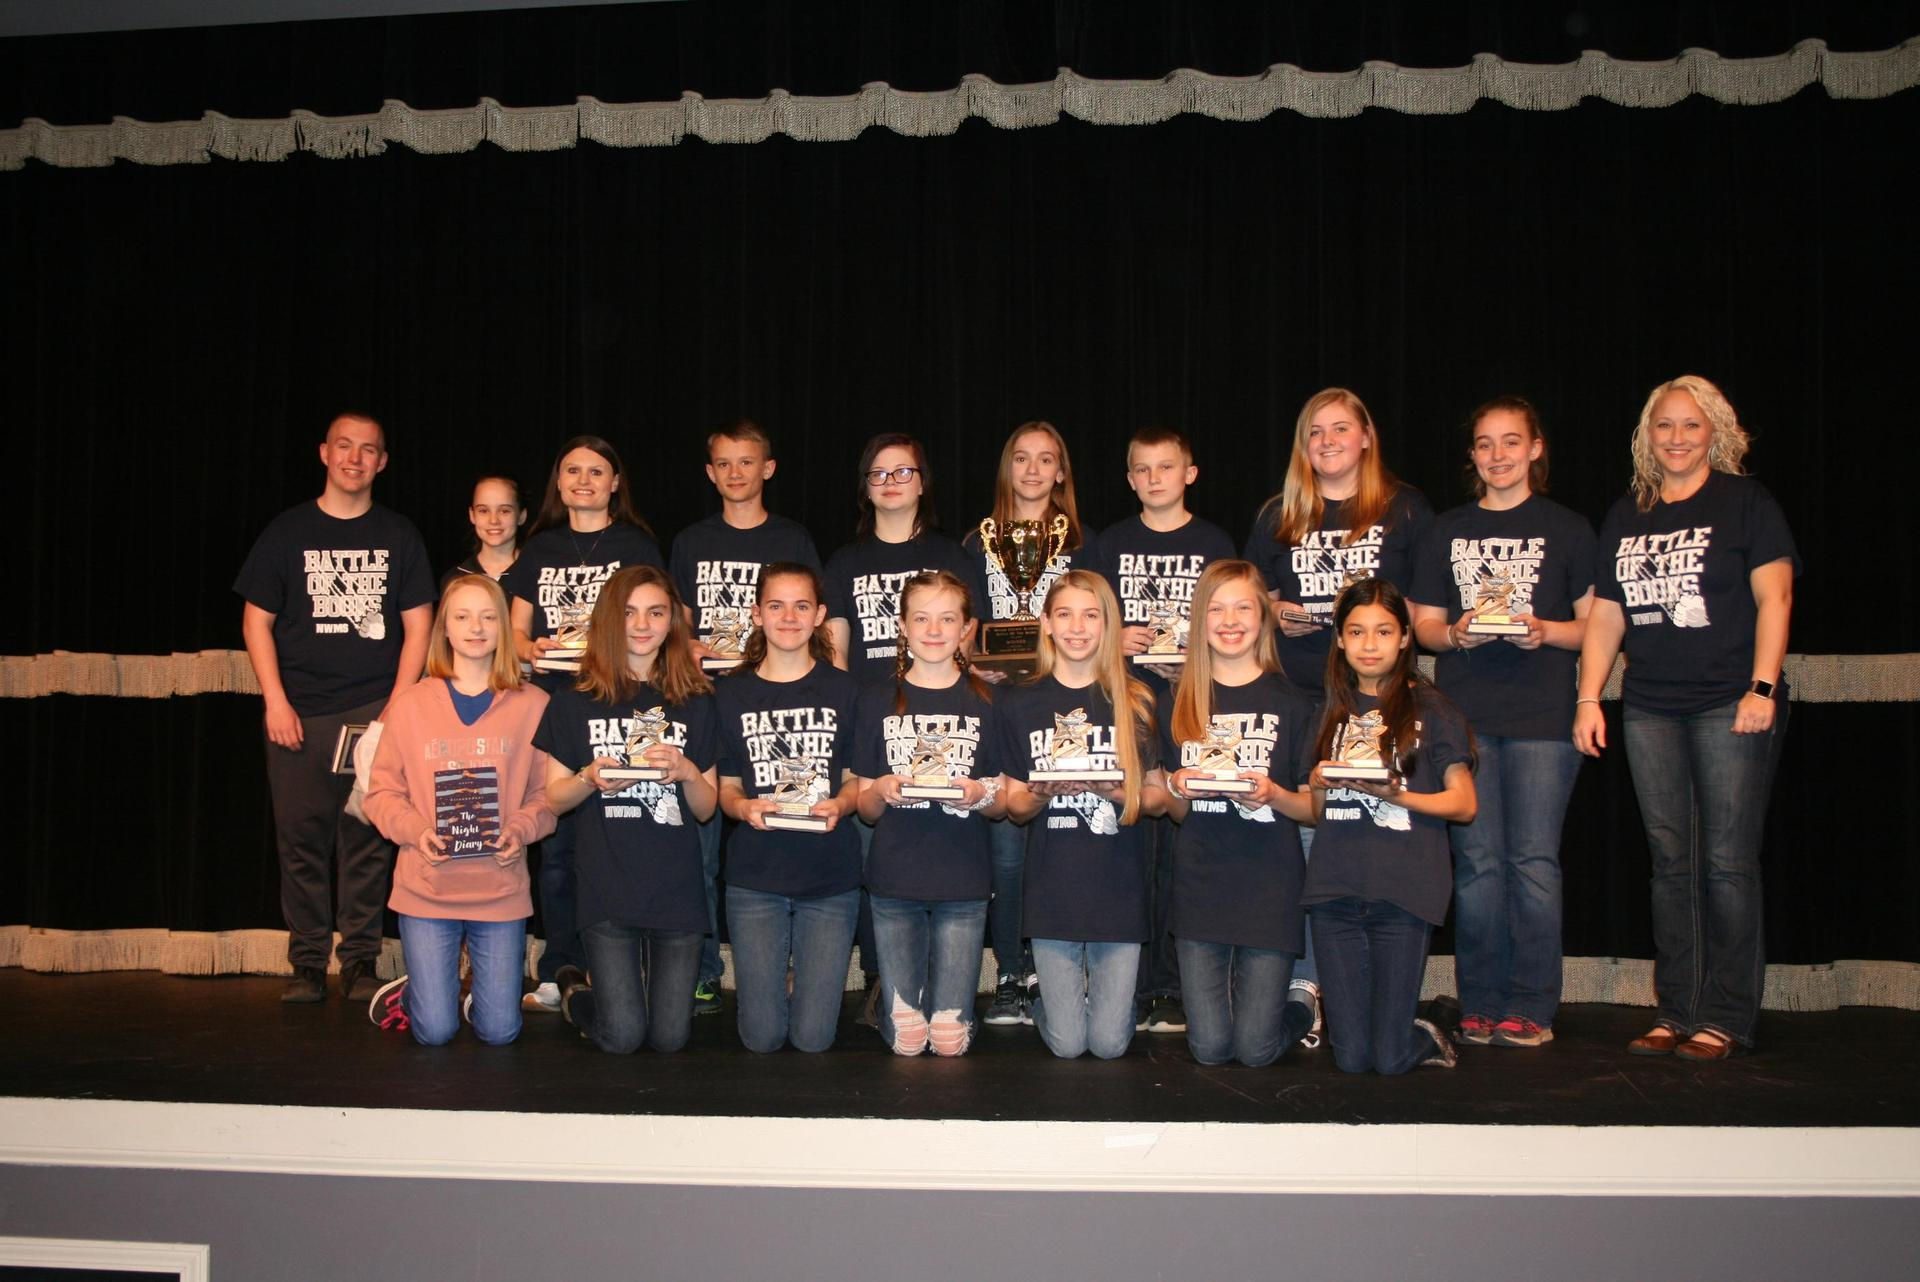 North Wilkes Middle Battle of the Books Team